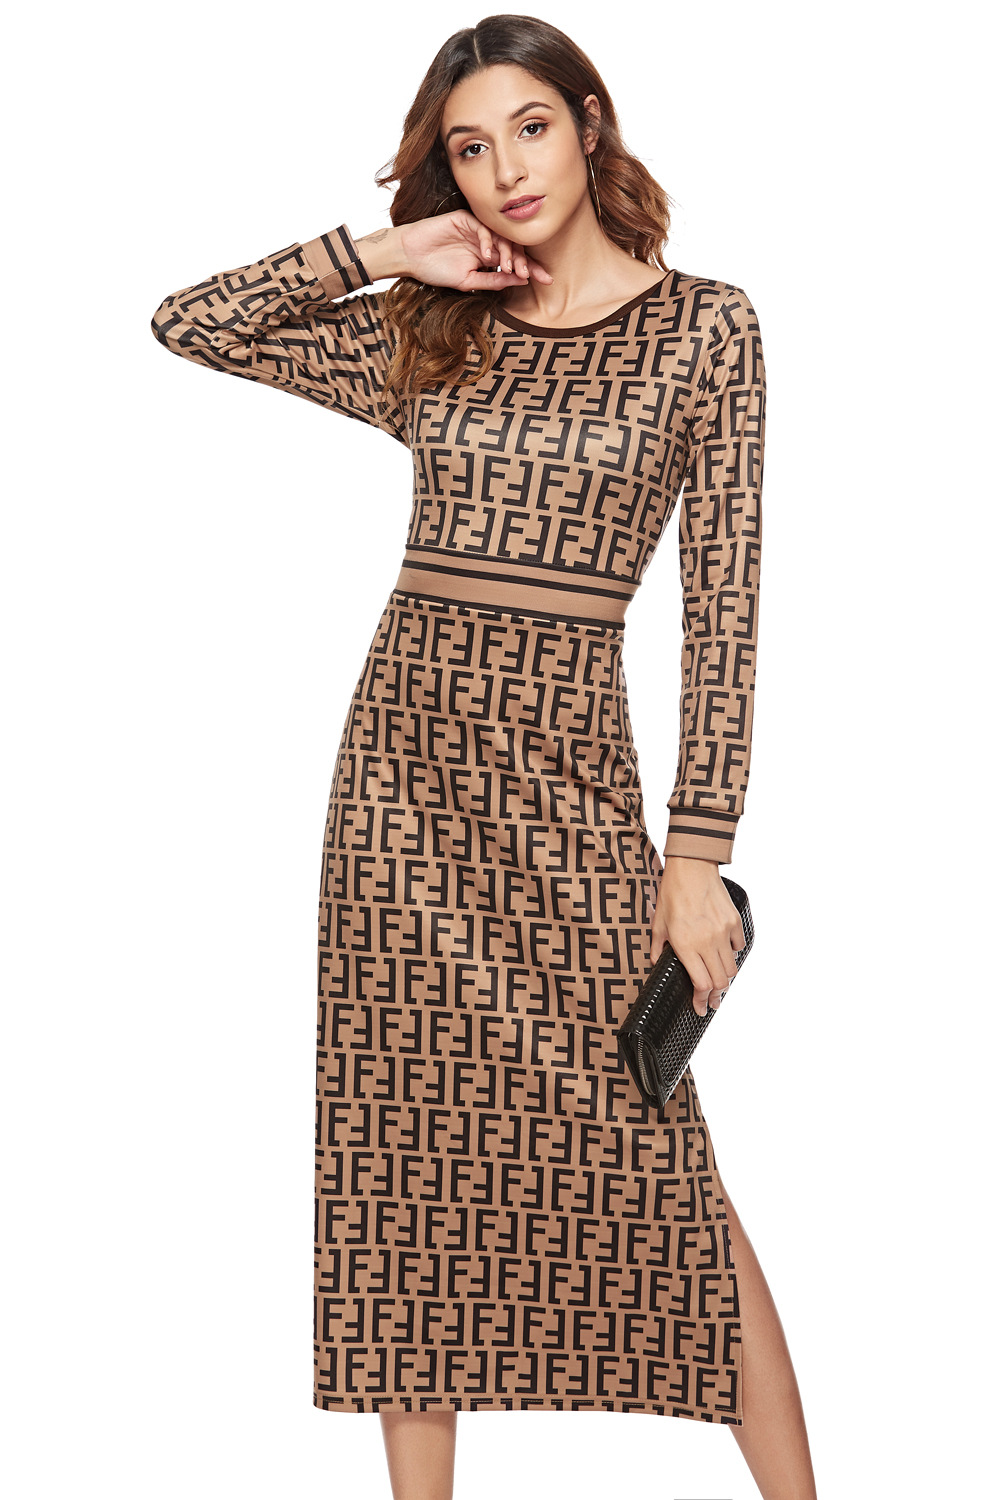 Bonjean Casual Polka Printed Long Party Summer Dresses Women Sexy Short Sleeve Office O Neck Girls FF Dress Knitted Boho